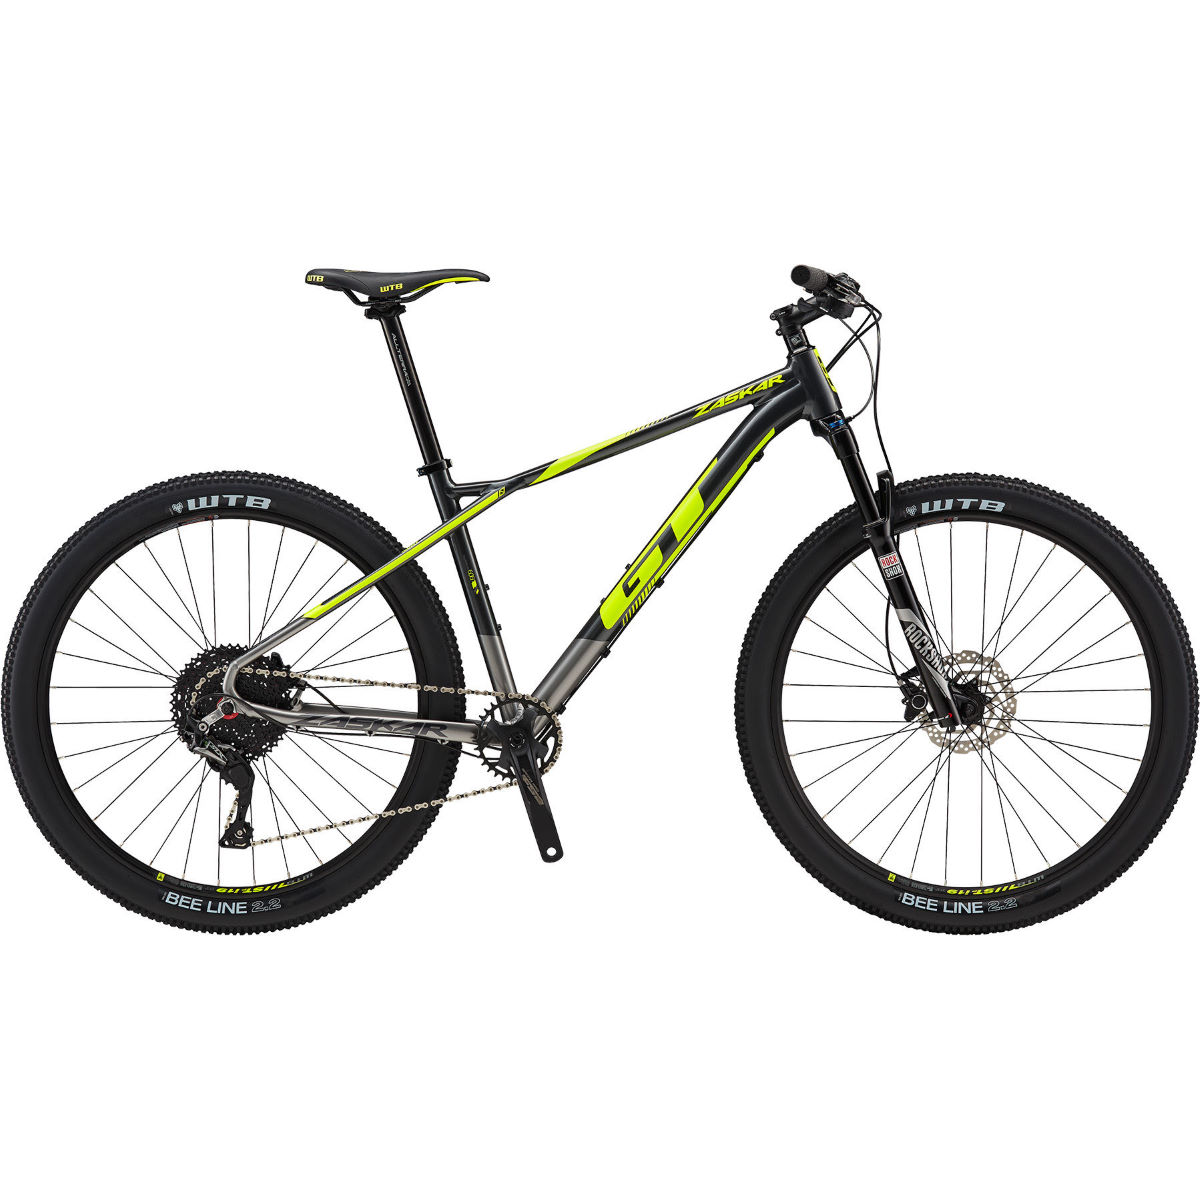 VTT semi-rigide GT Zaskar Al Comp - Medium Stock Bike Bronze